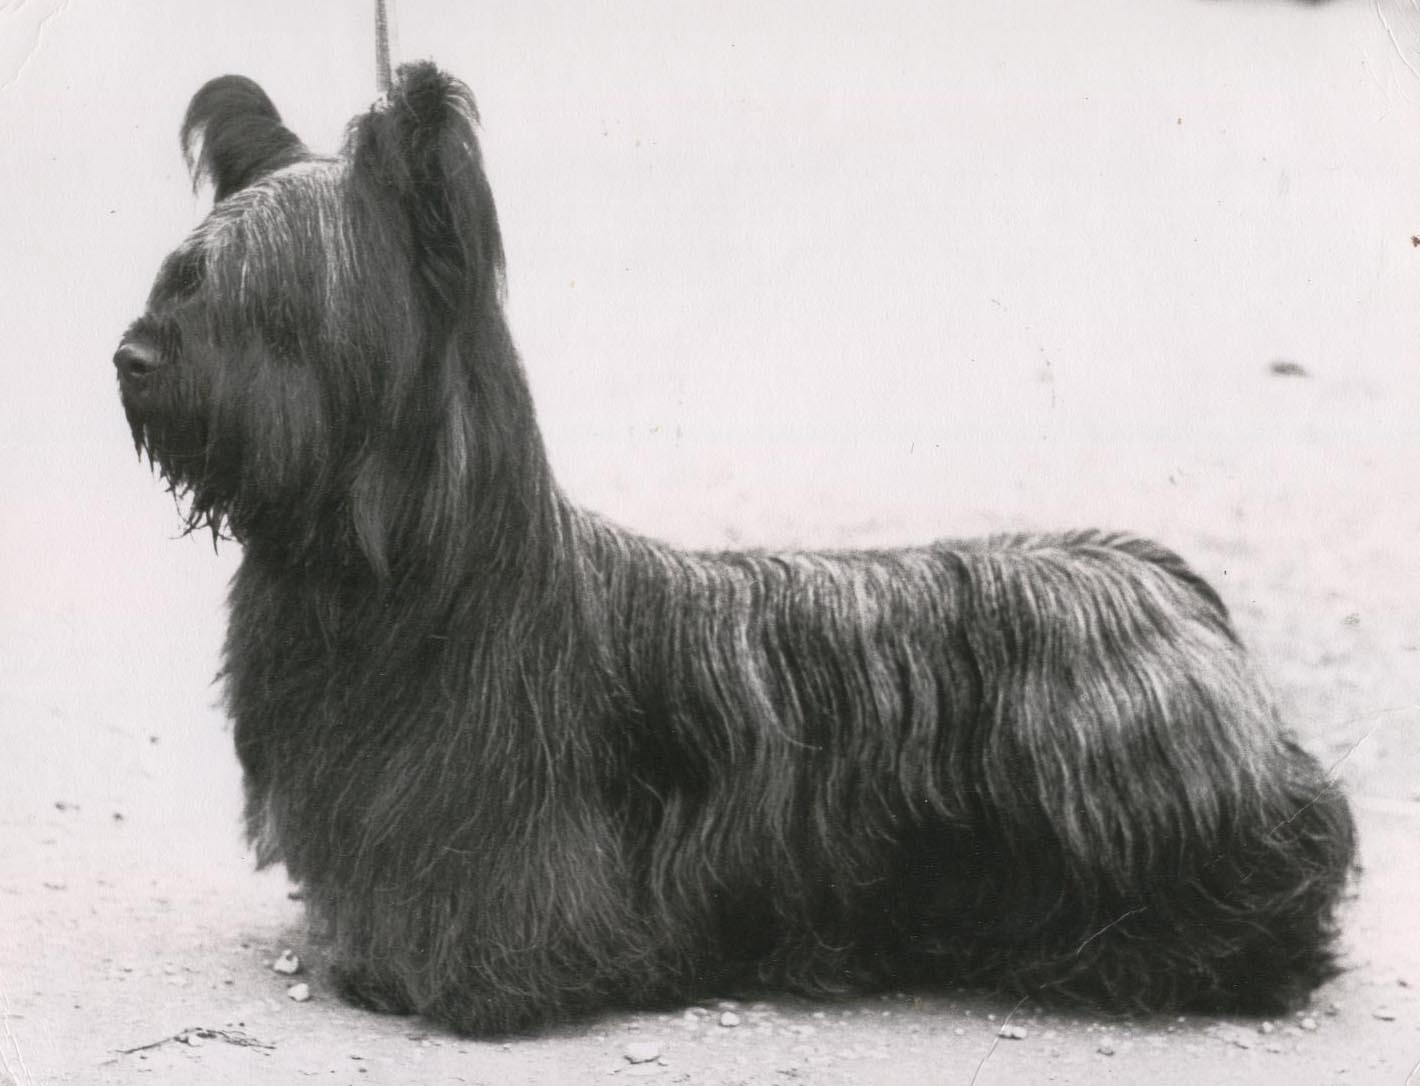 Cute Wallpapers For The Letter T Cute Skye Terrier Dog Photo And Wallpaper Beautiful Cute